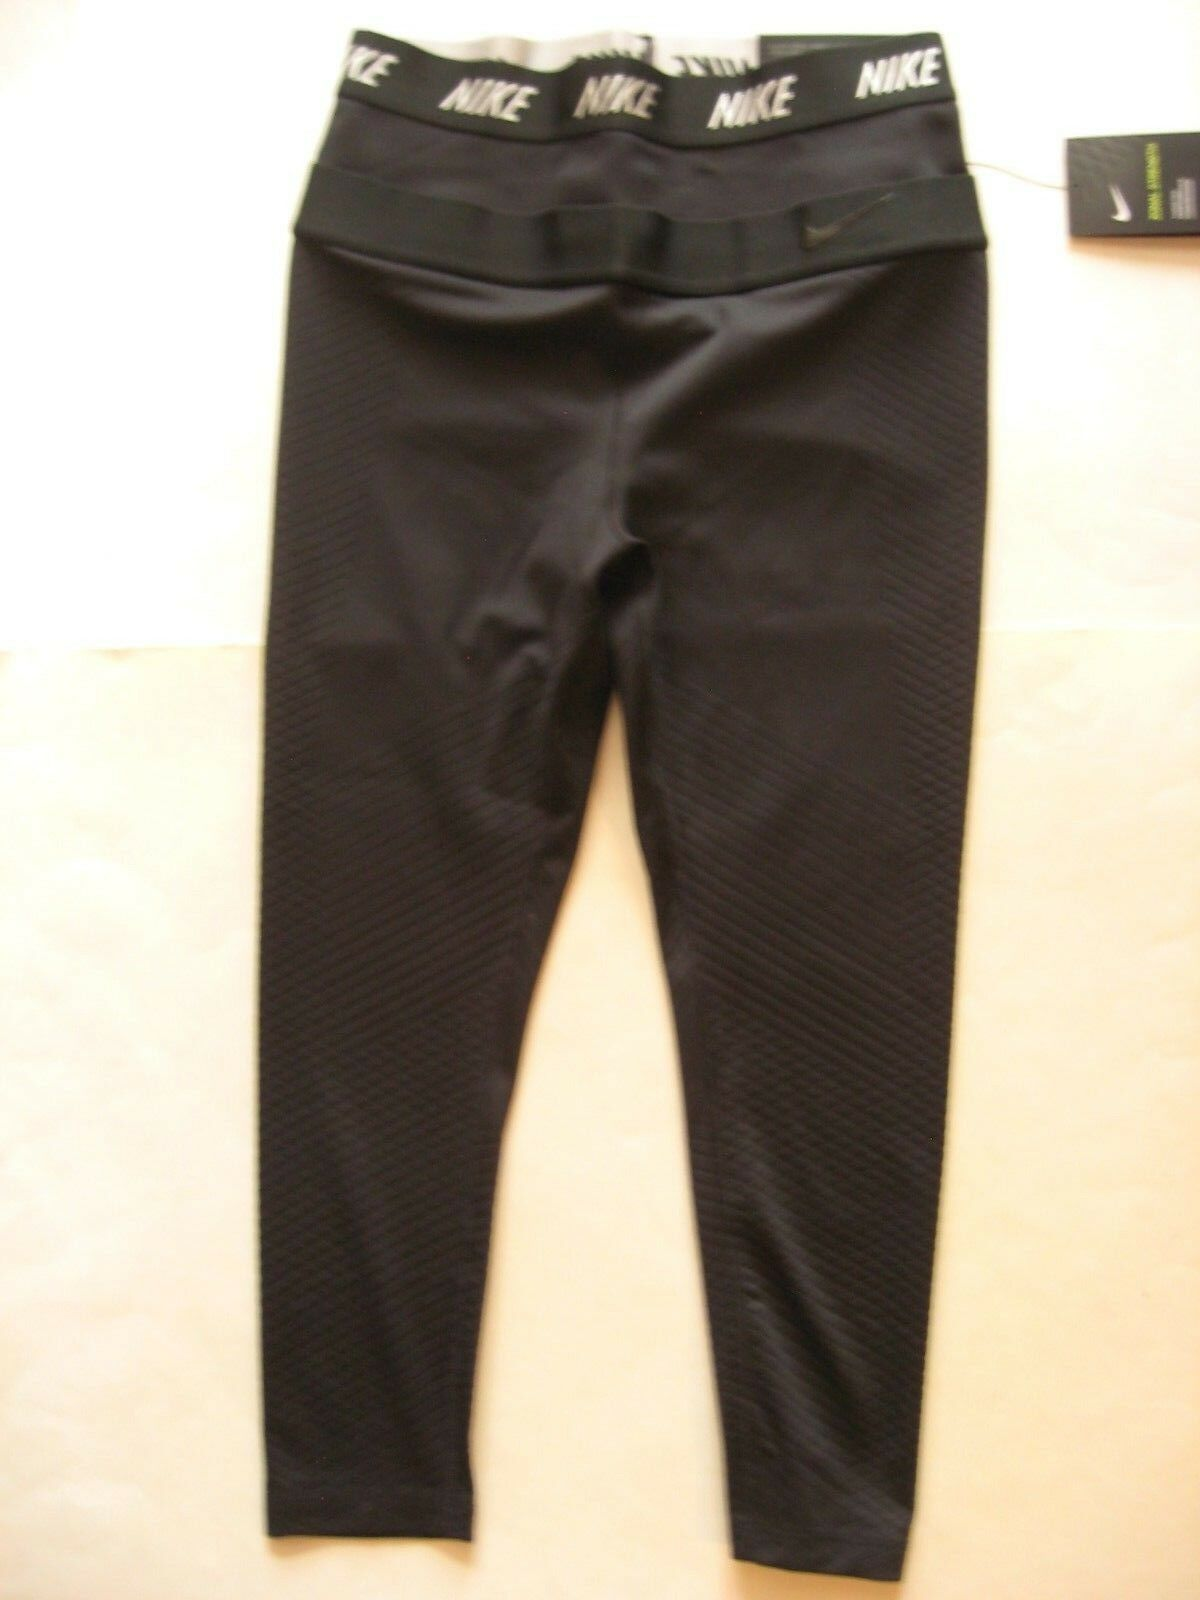 New NIKE ZONAL STRENGTH WOMEN'S HIGH RISE 21   TRAINING Capri Pants 861624-010 S  order now with big discount & free delivery